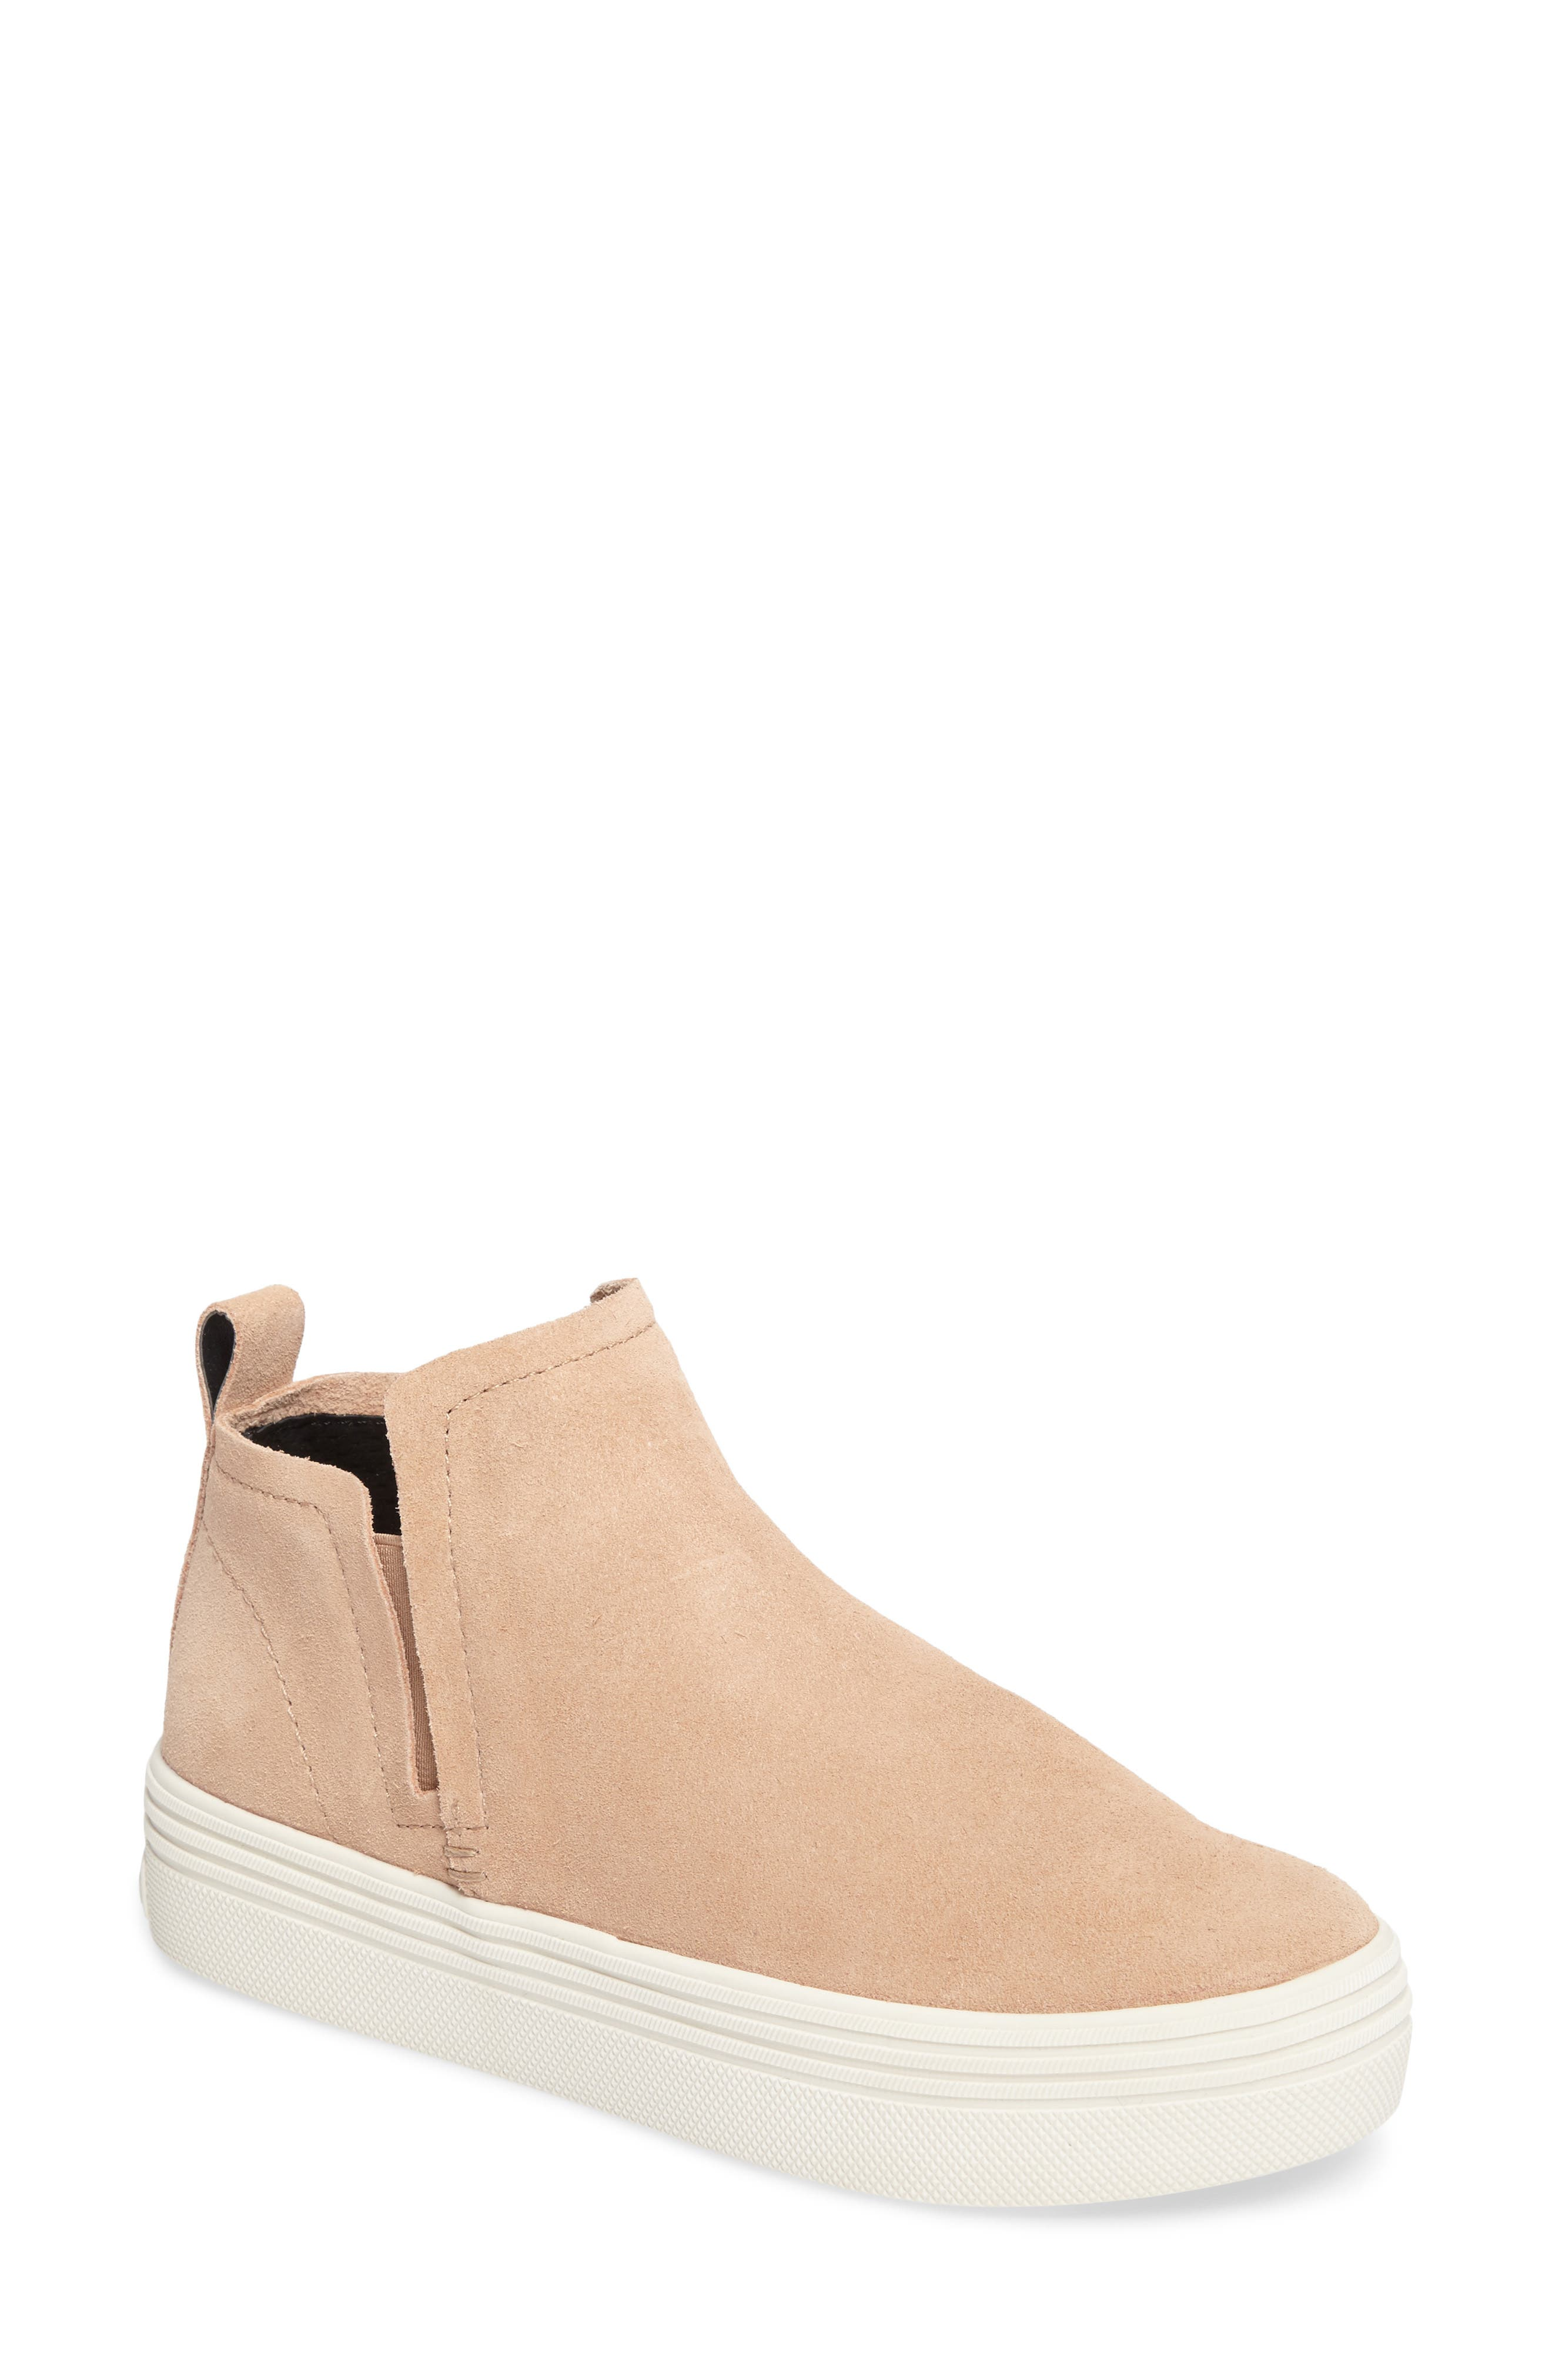 Tate Slip-On Sneaker,                         Main,                         color, Blush Suede